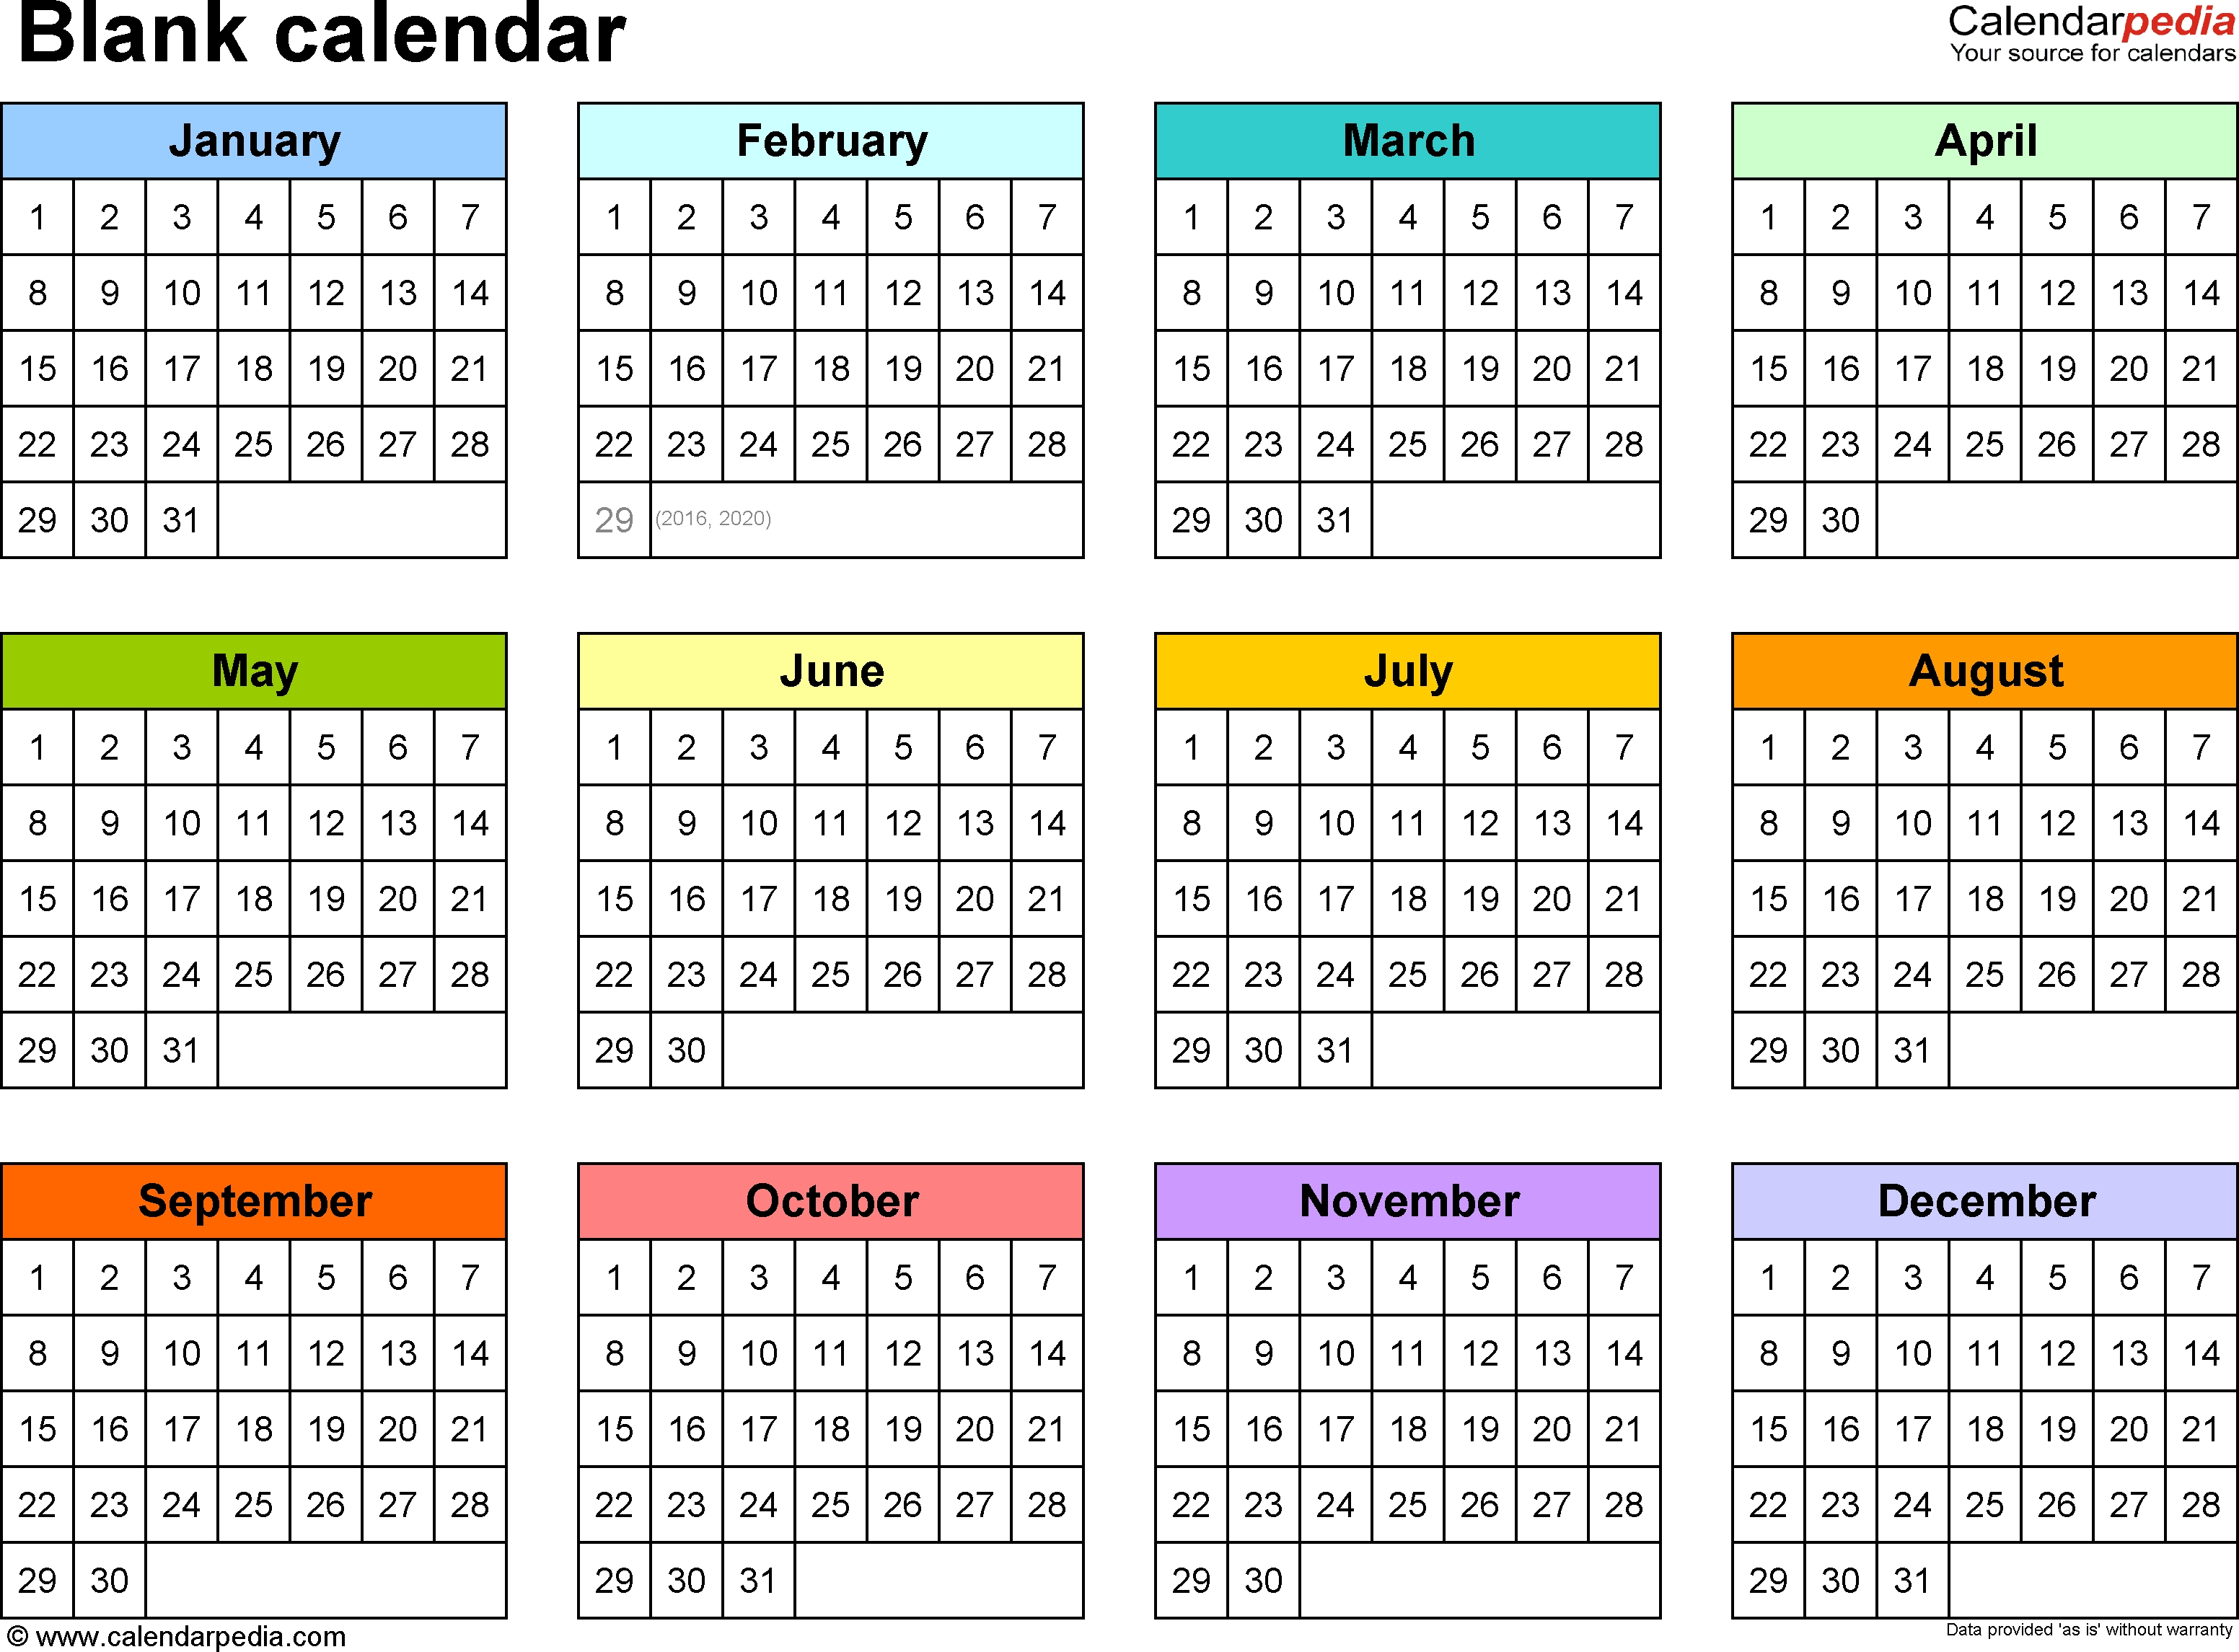 Blank Calendar - 9 Free Printable Microsoft Word Templates-Blank Calendar 4 Months One Page